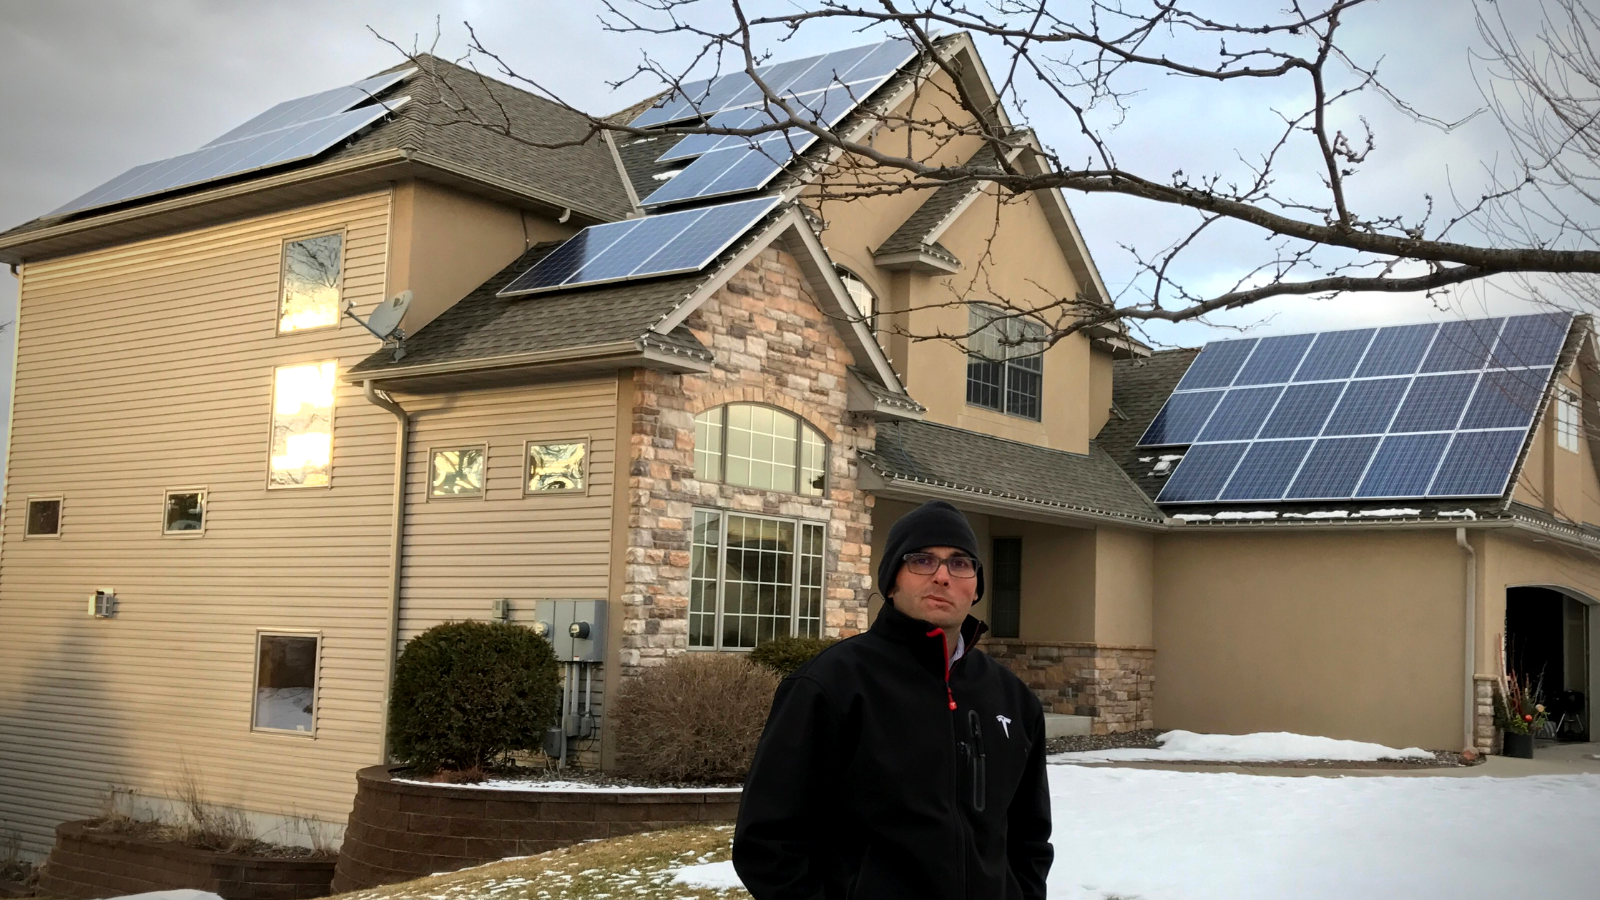 A house with a solar panels